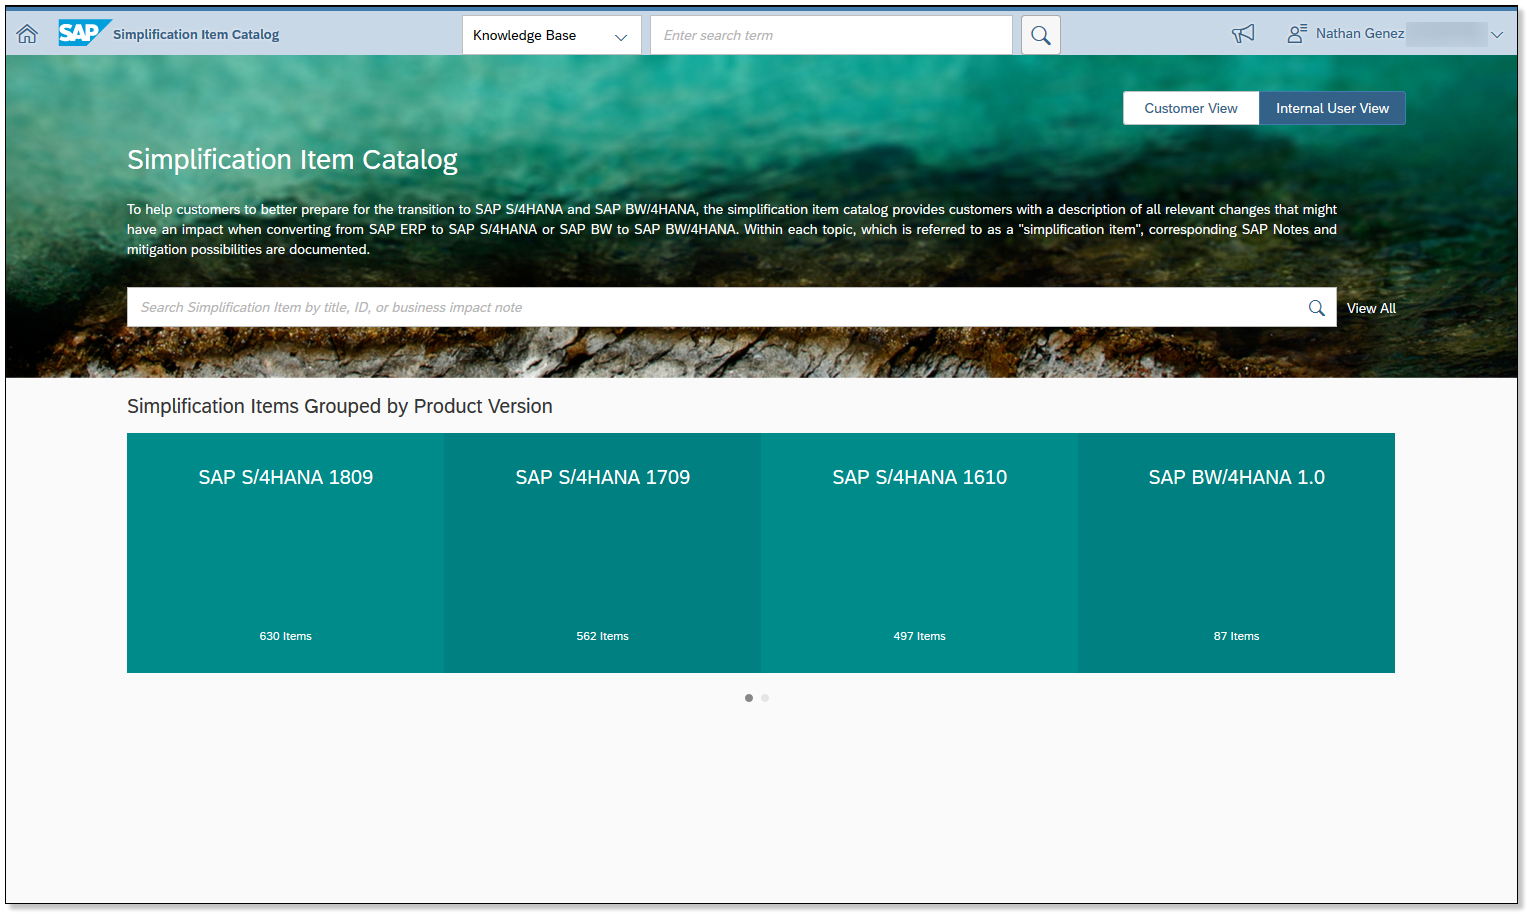 The Best Way to Research S/4HANA Changes